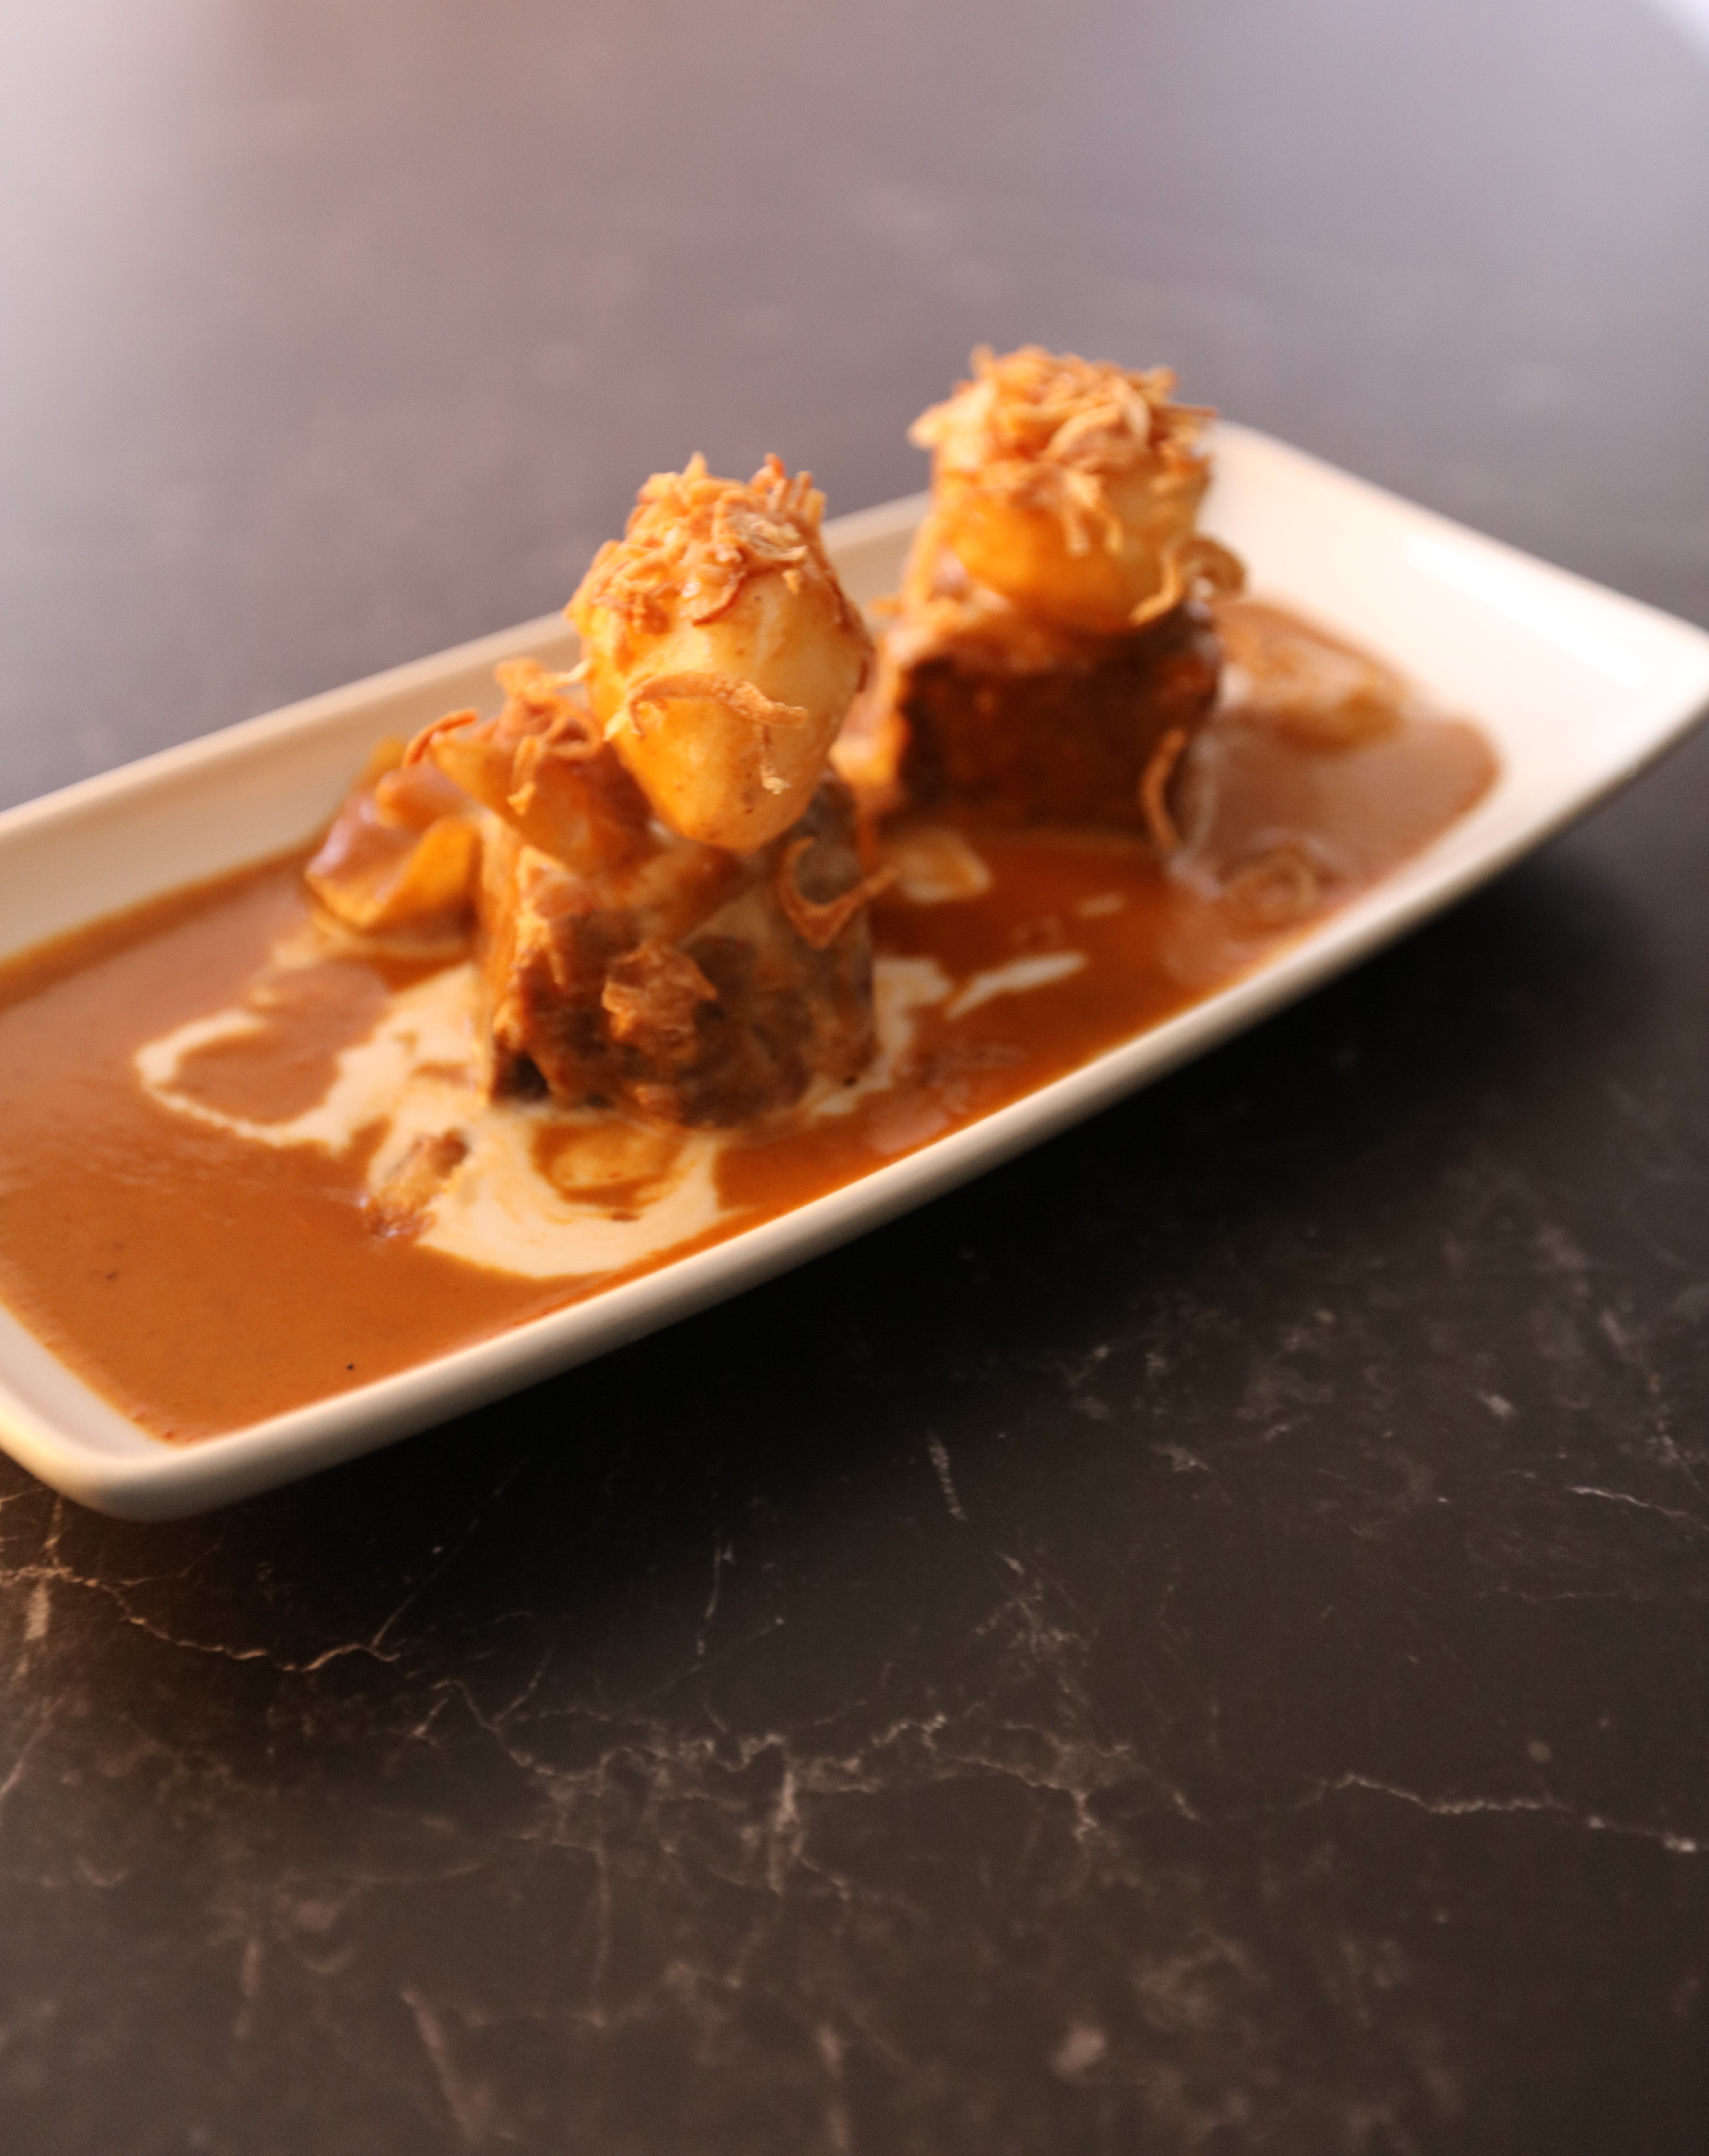 A rectangular plate with two portions of the fillet of beef Masaman curry